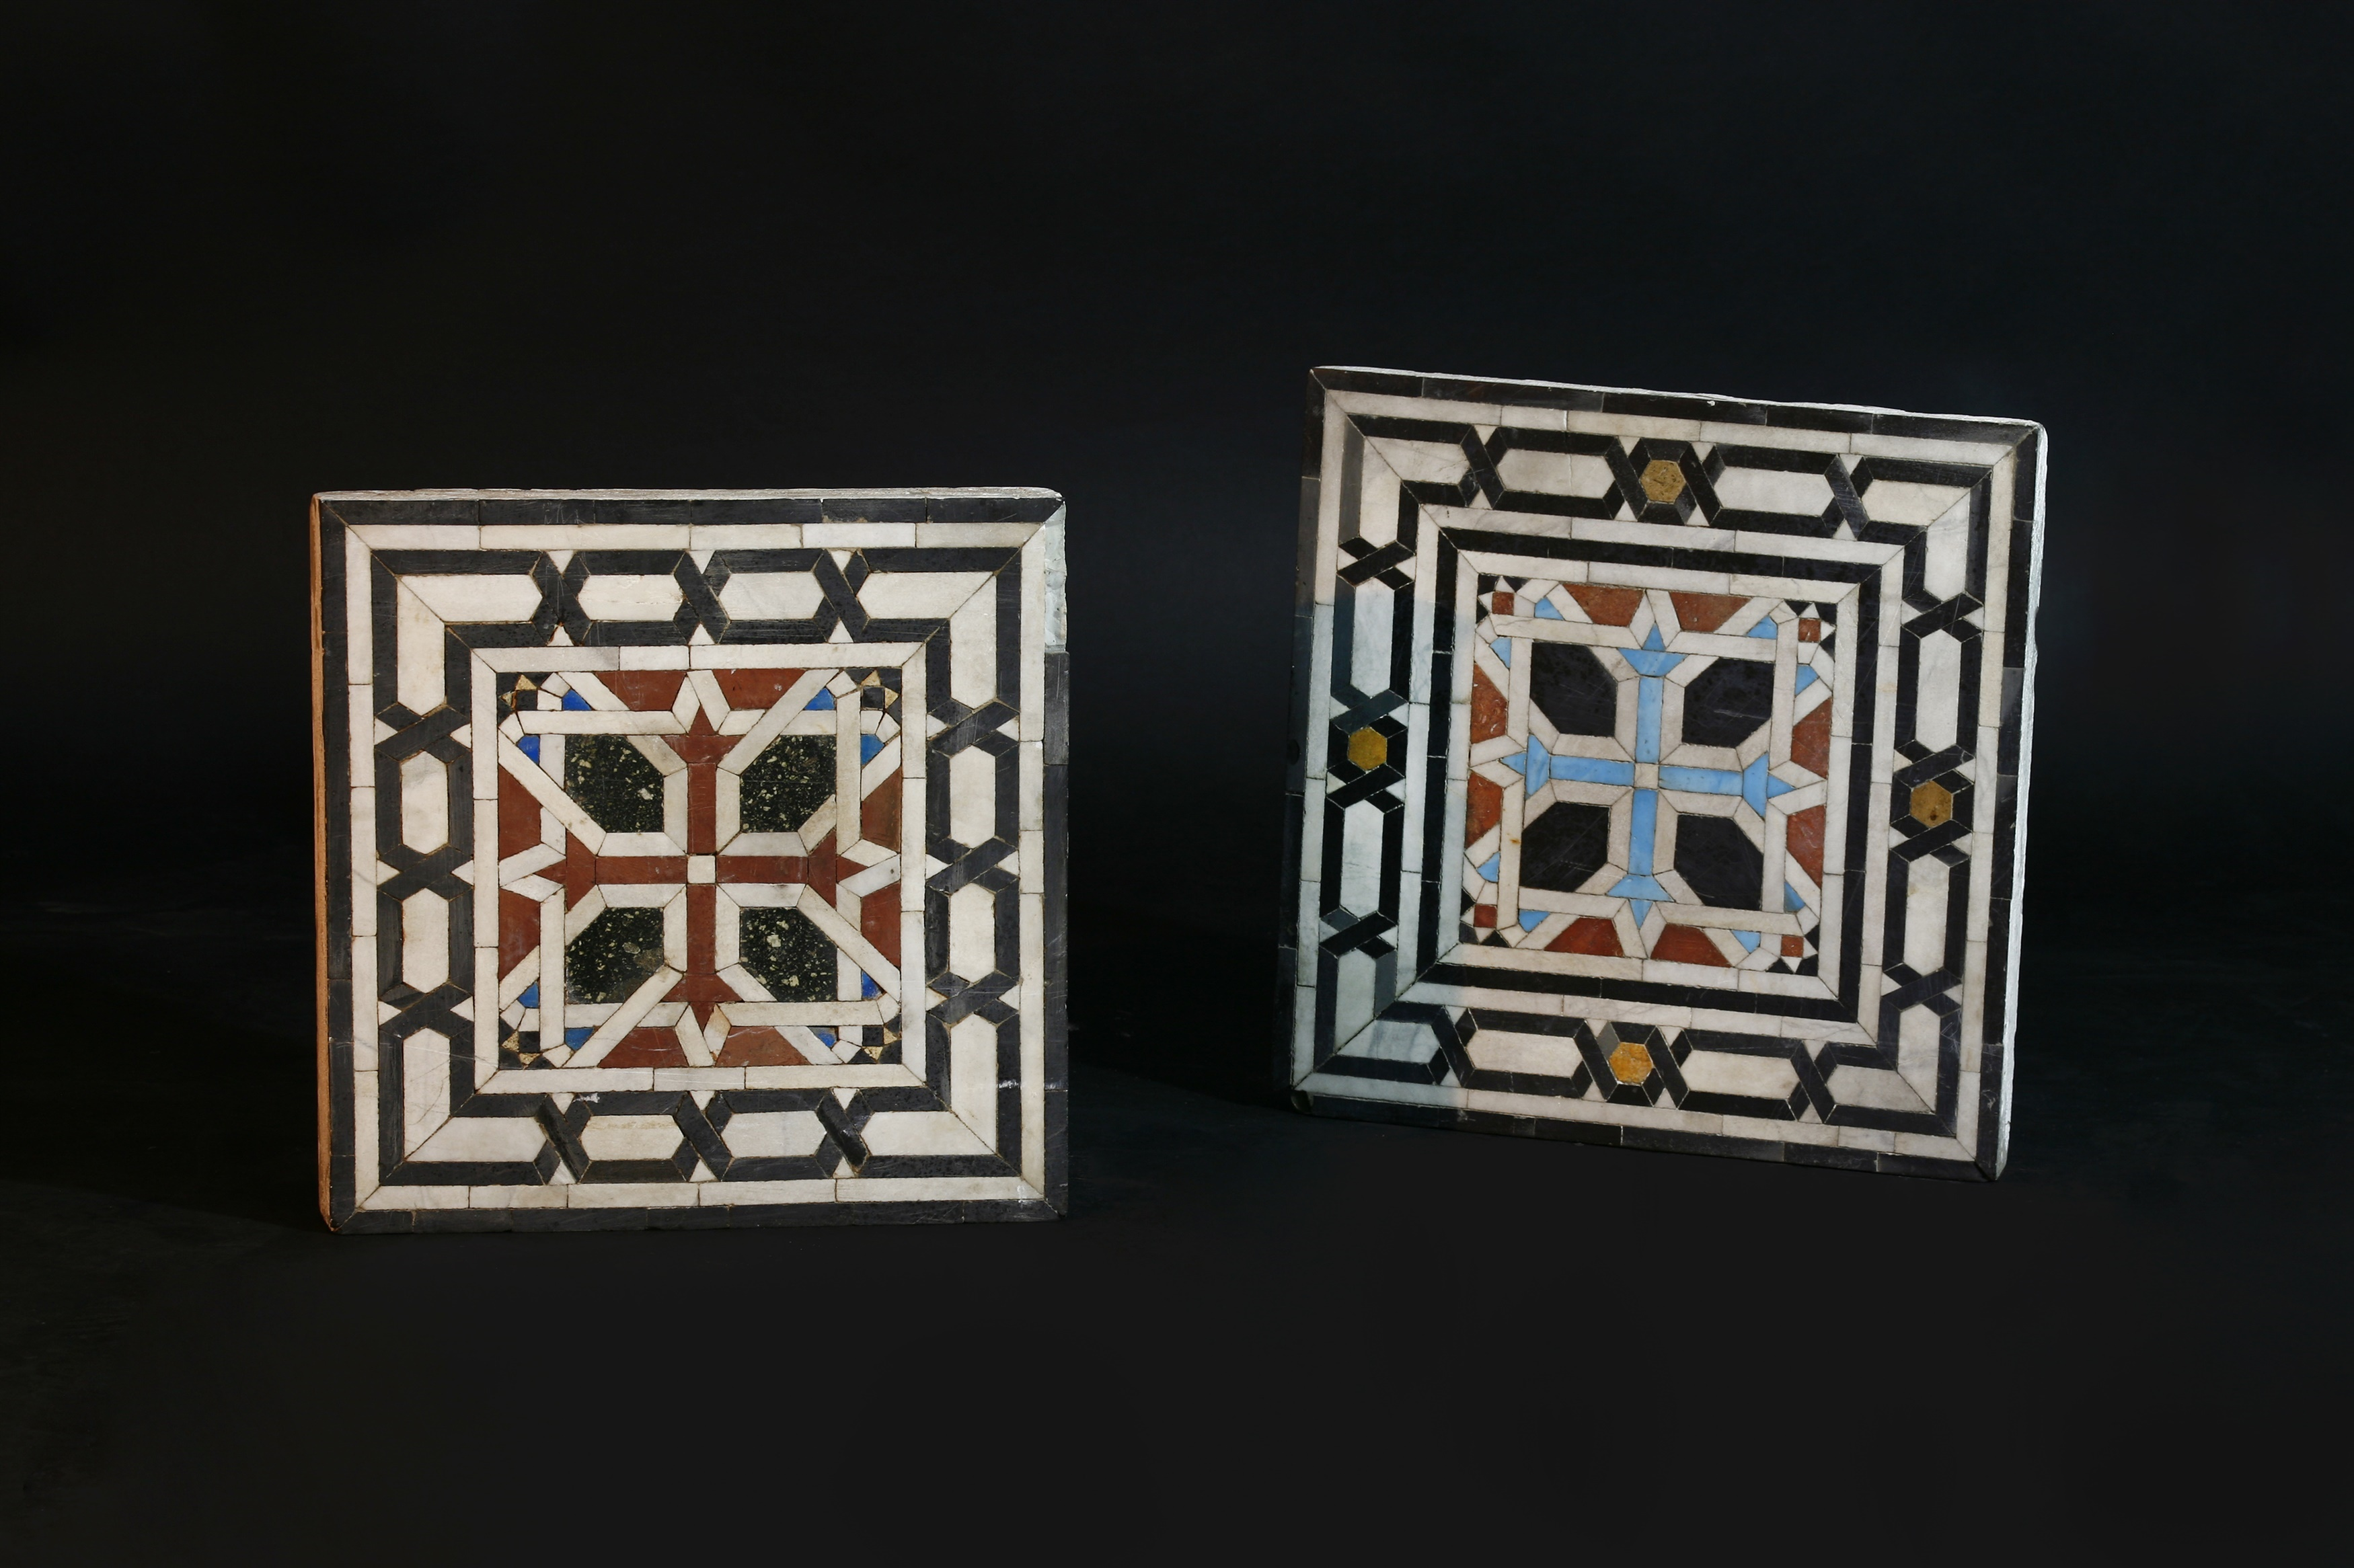 Two Mamluk (15th-17th century CE) square mosaic panels